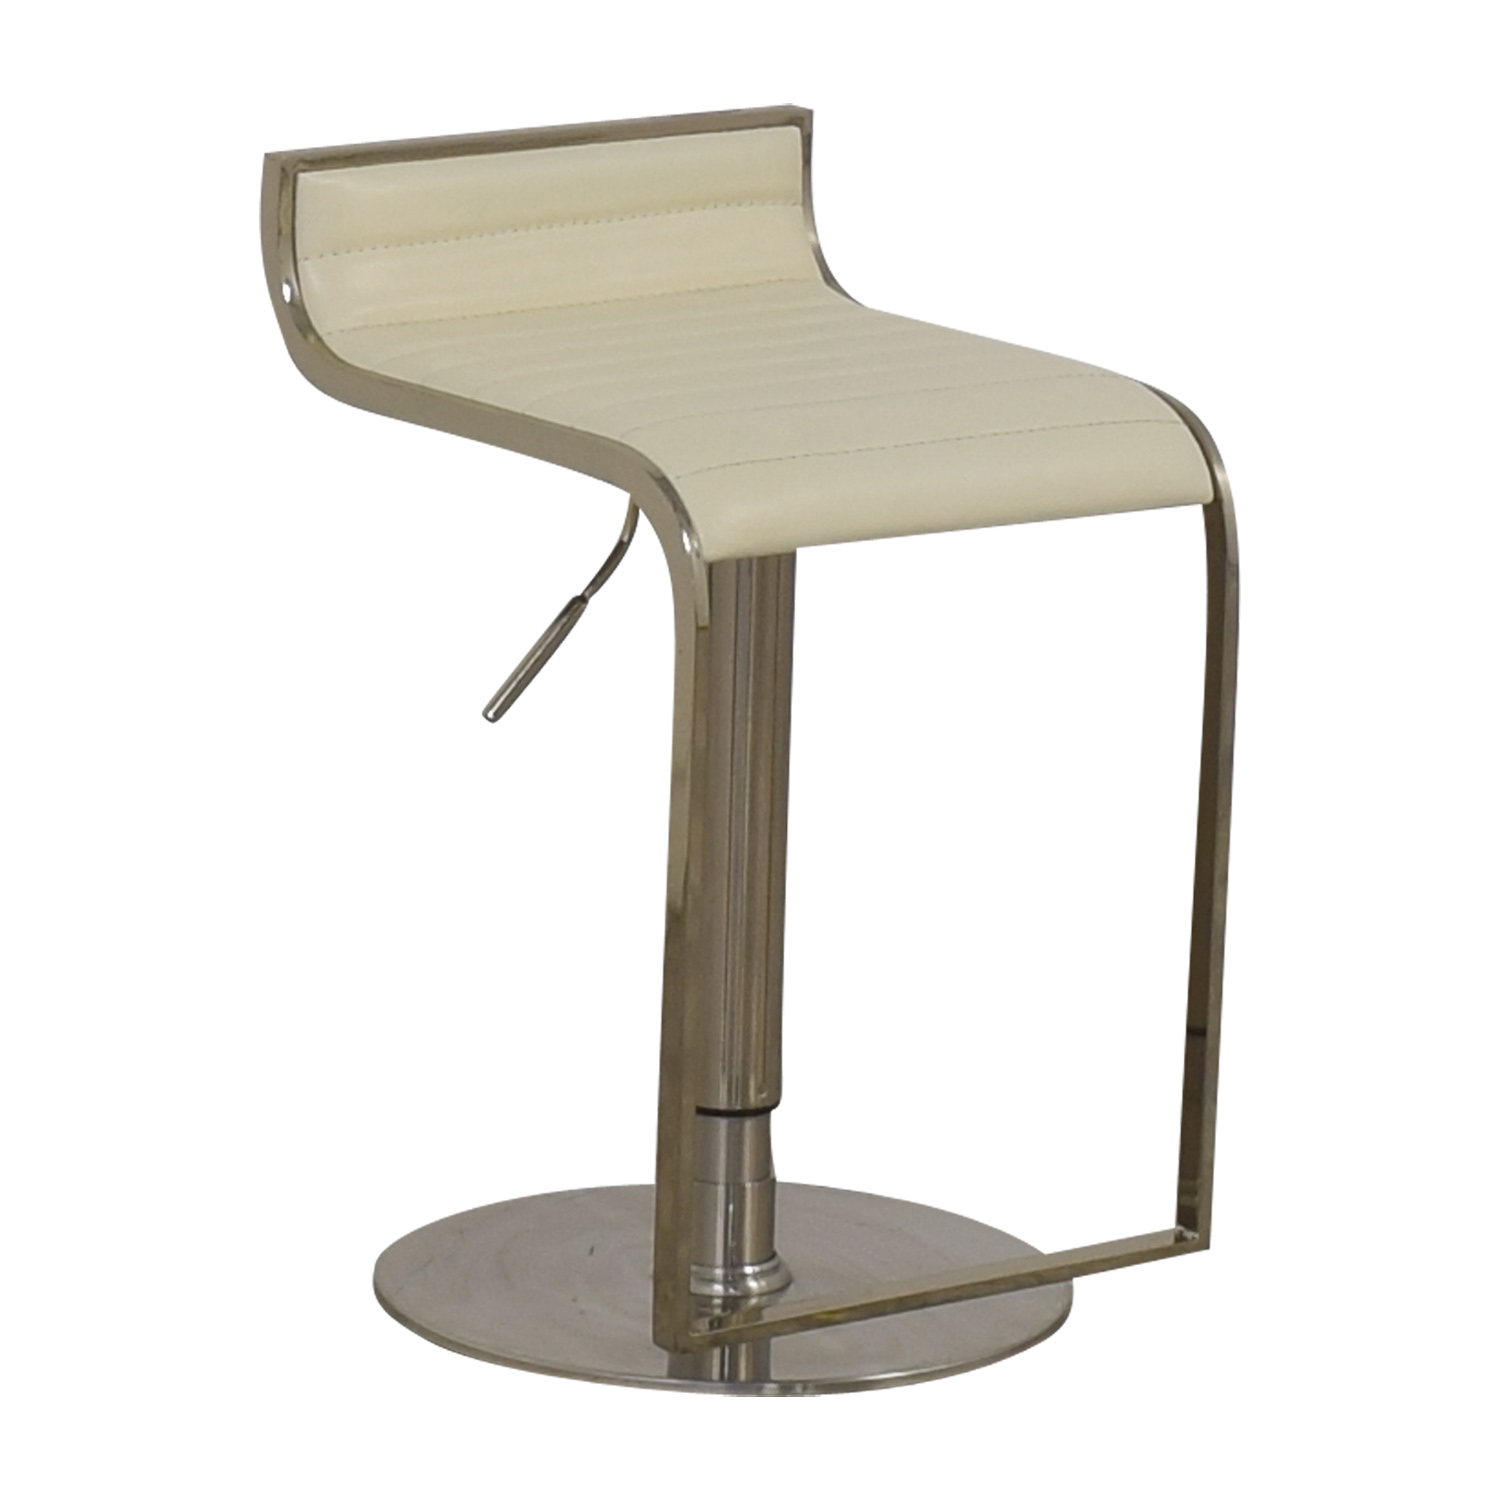 shop Tui Lifestyle Tui Lifestyle Leather Bar Stool online